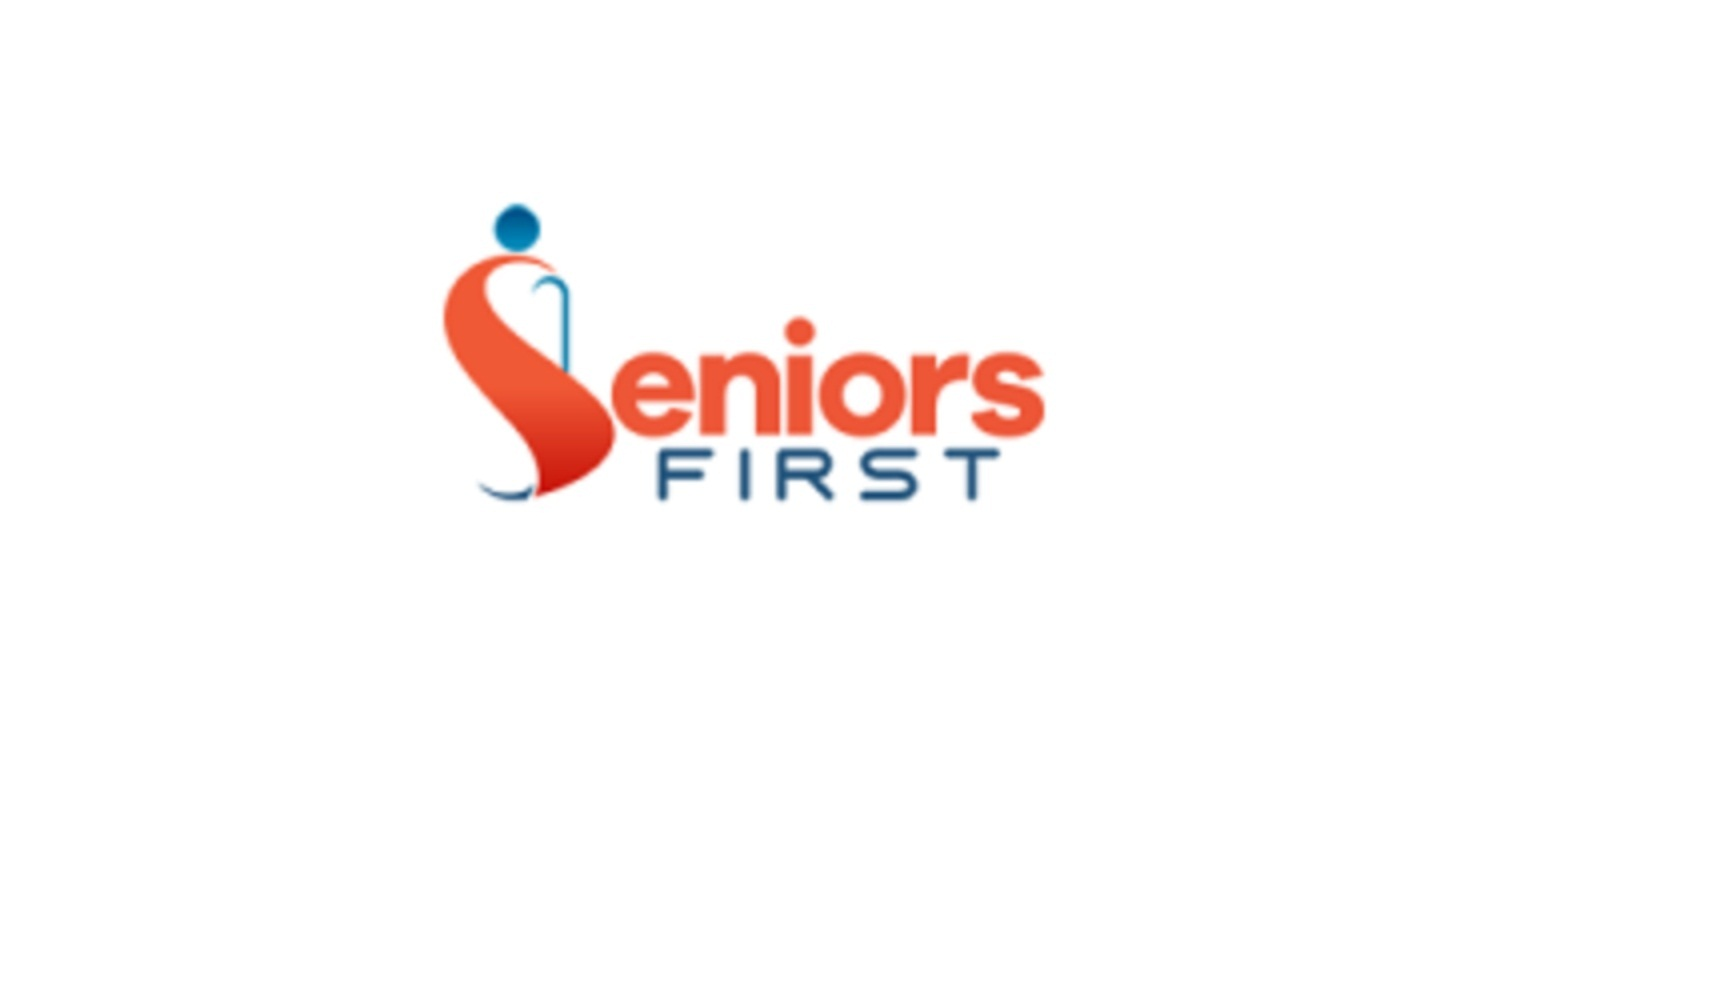 Seniors First Senior Care Services